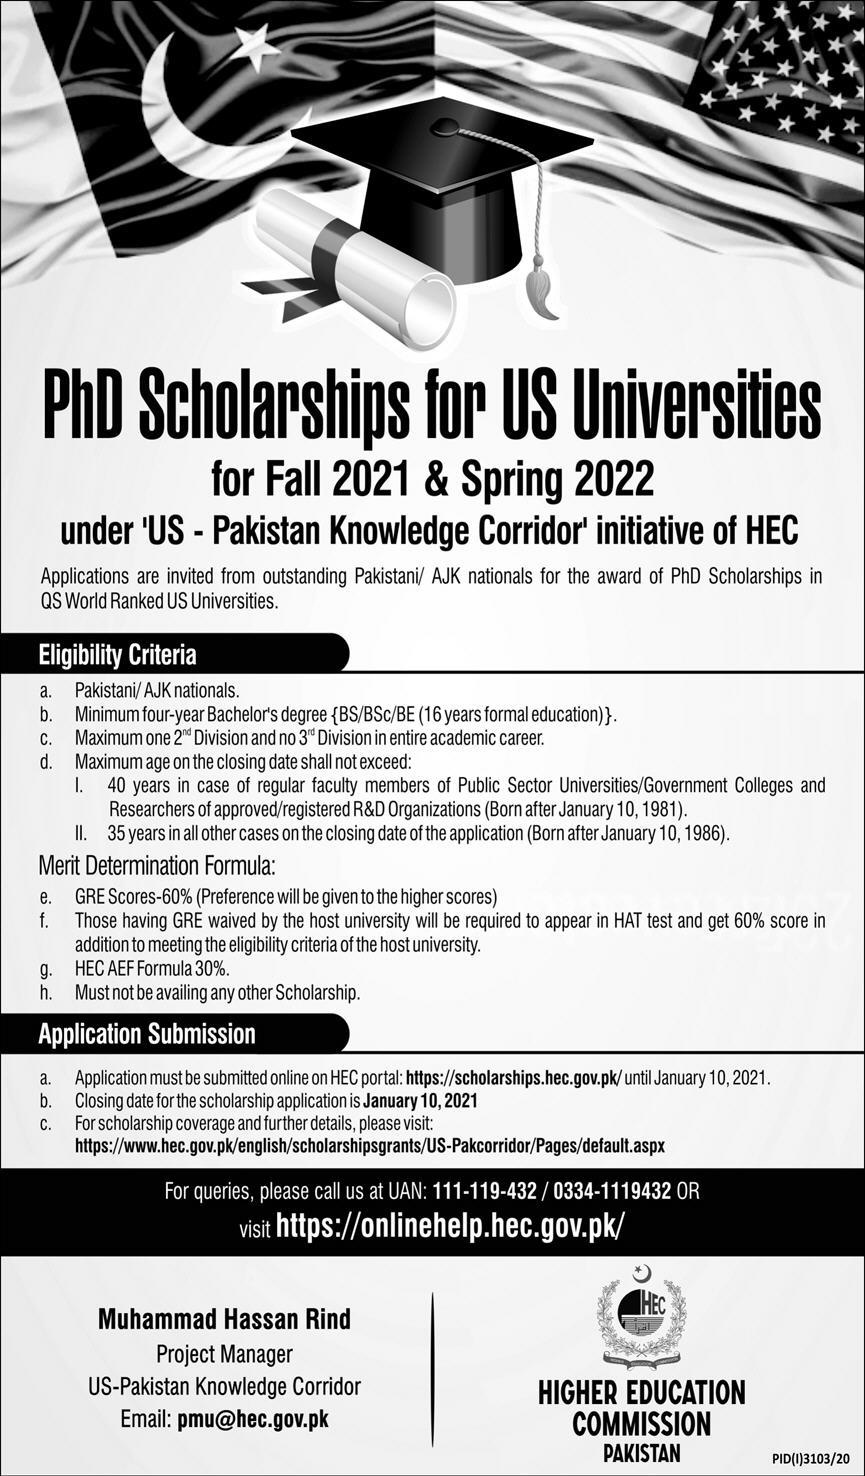 Higher Education Commission (HEC) Ph.D. Scholarships for US Universities